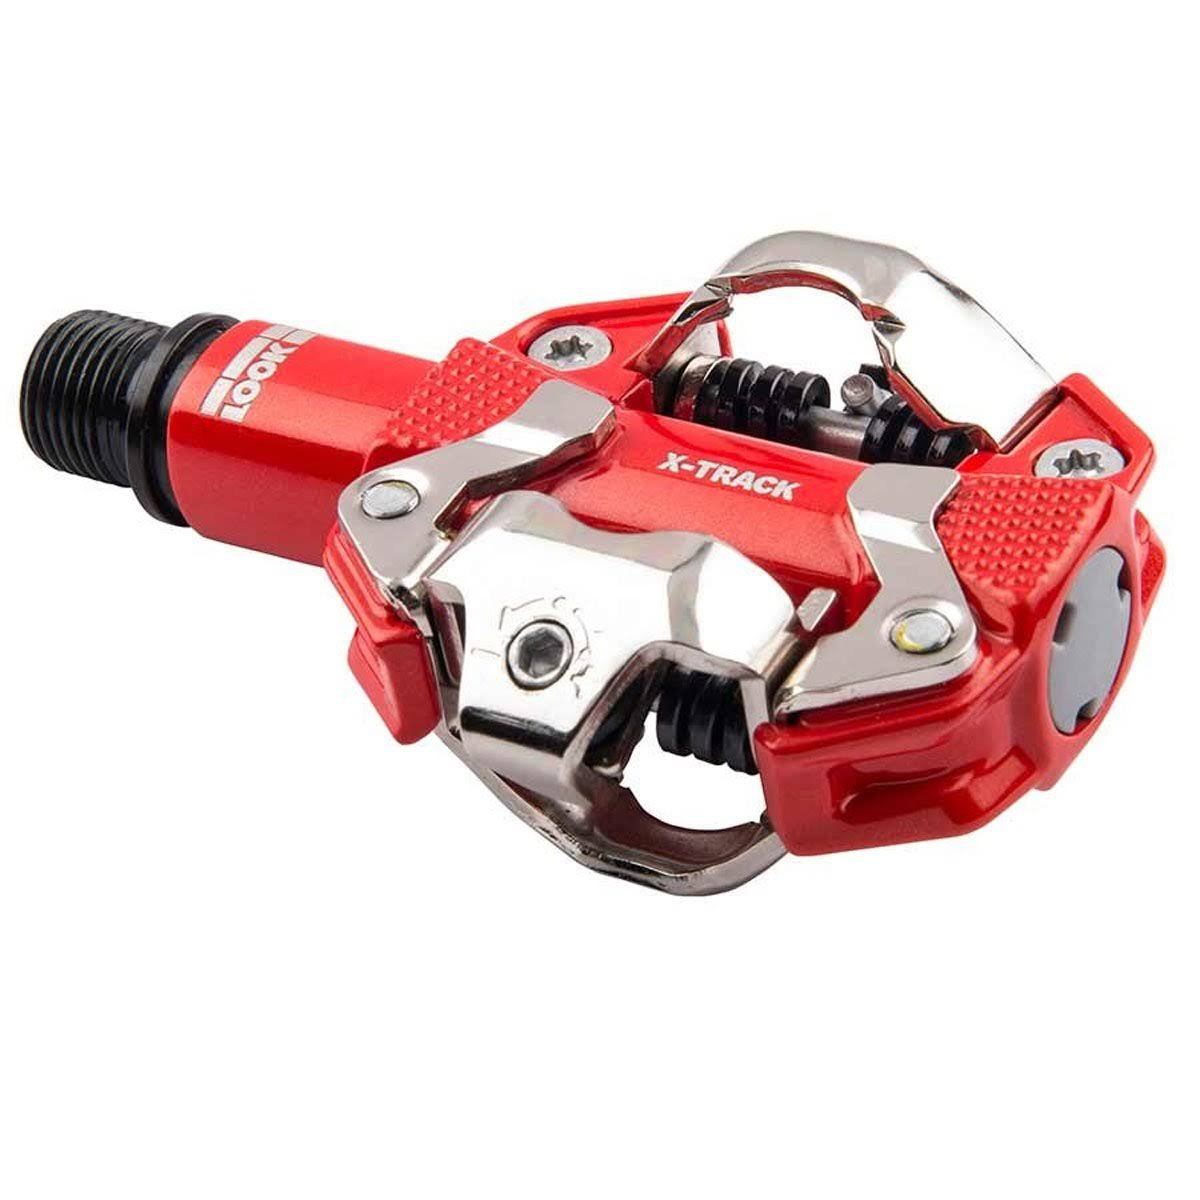 Look X-Track MTB Clipless Pedal - Red